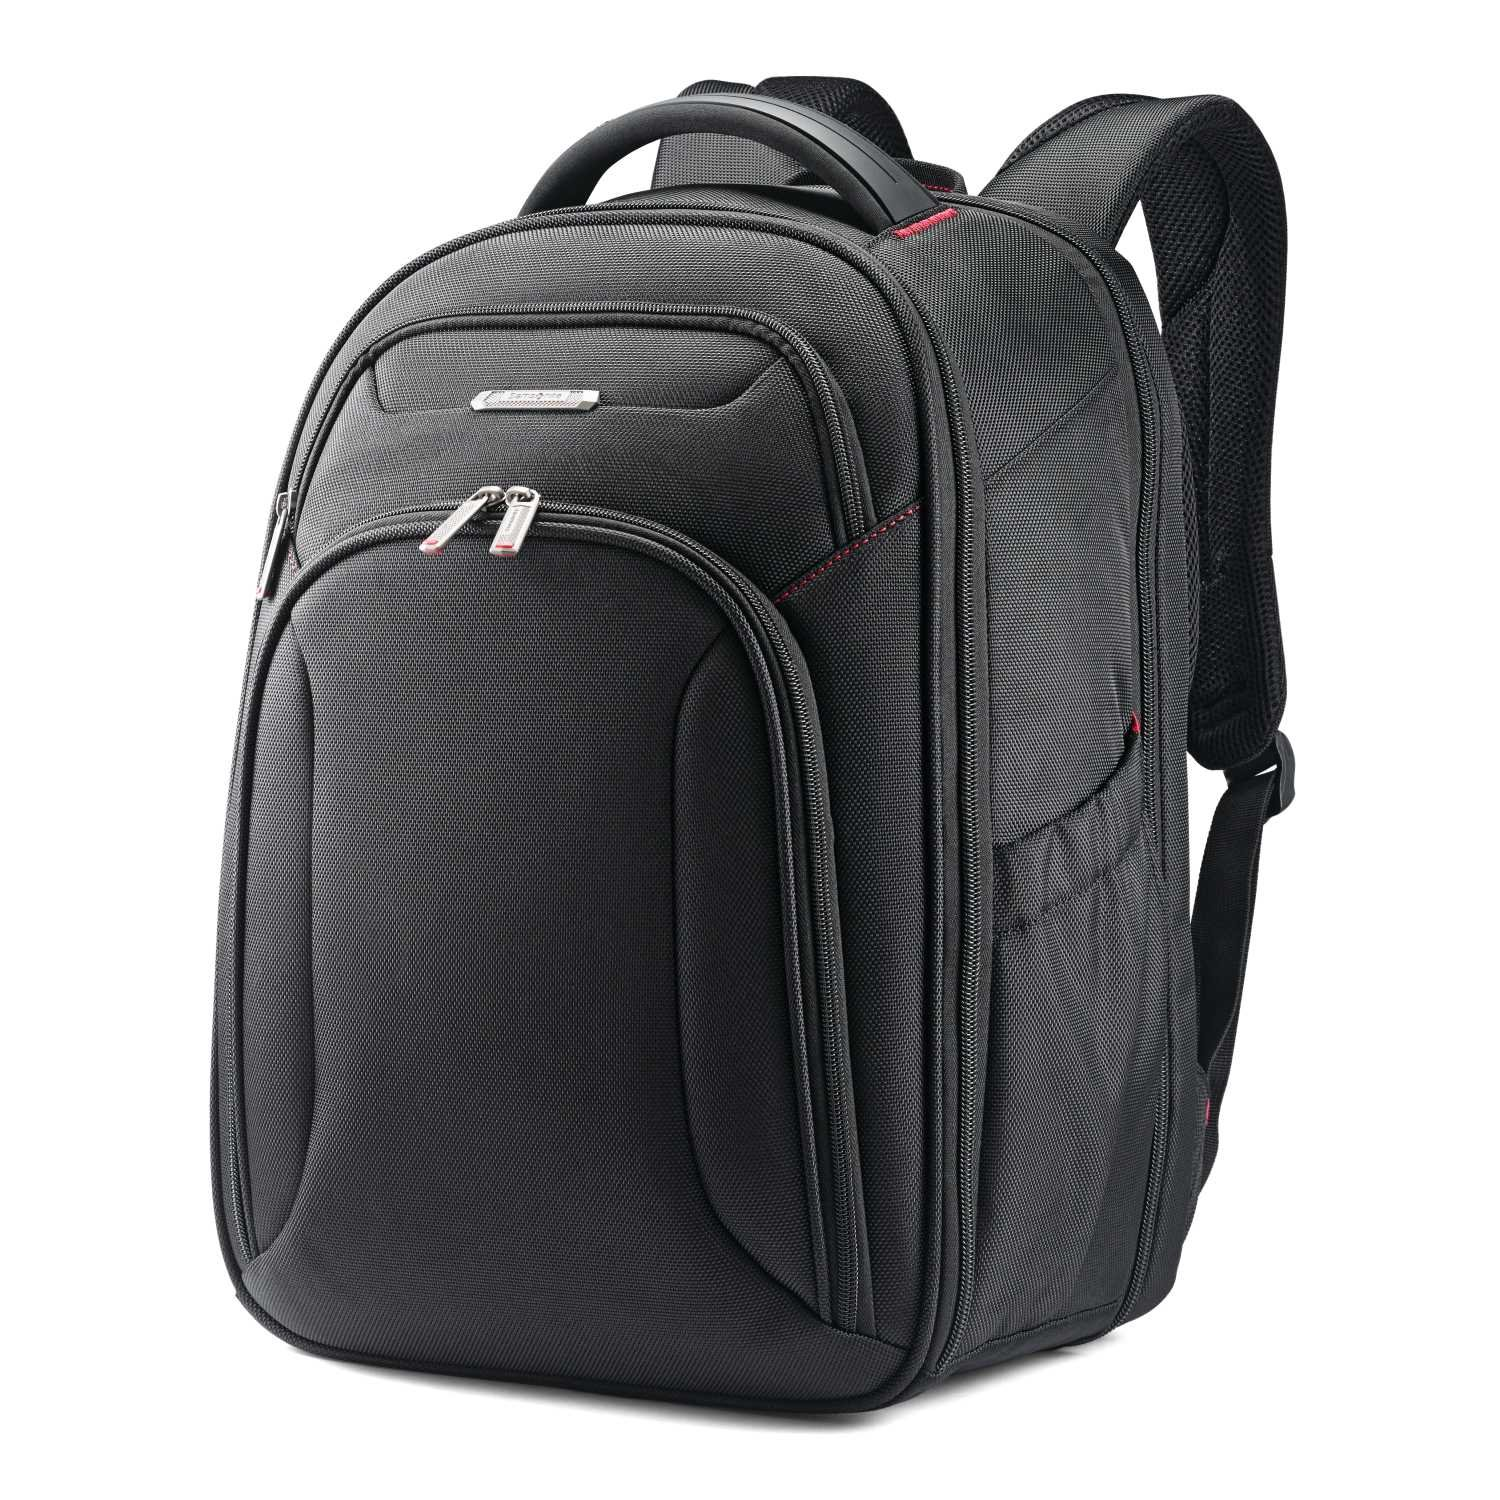 Samsonite Xenon 3.0 Large Backpack - Checkpoint Friendly Business, Black, One Size by Samsonite